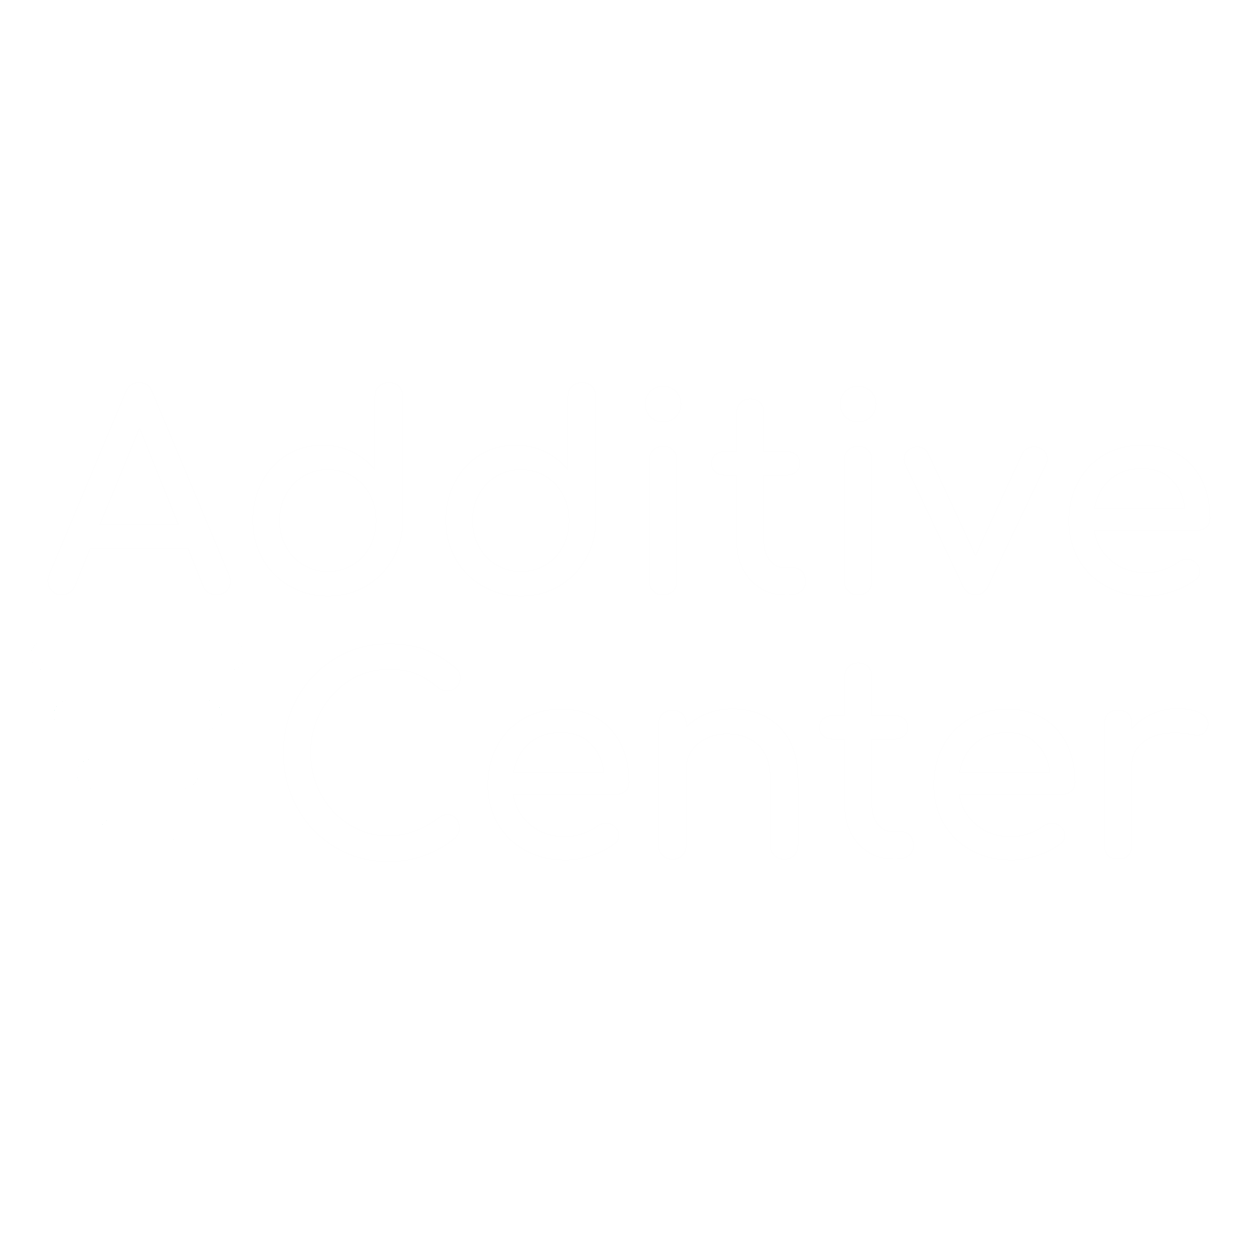 Additive Center